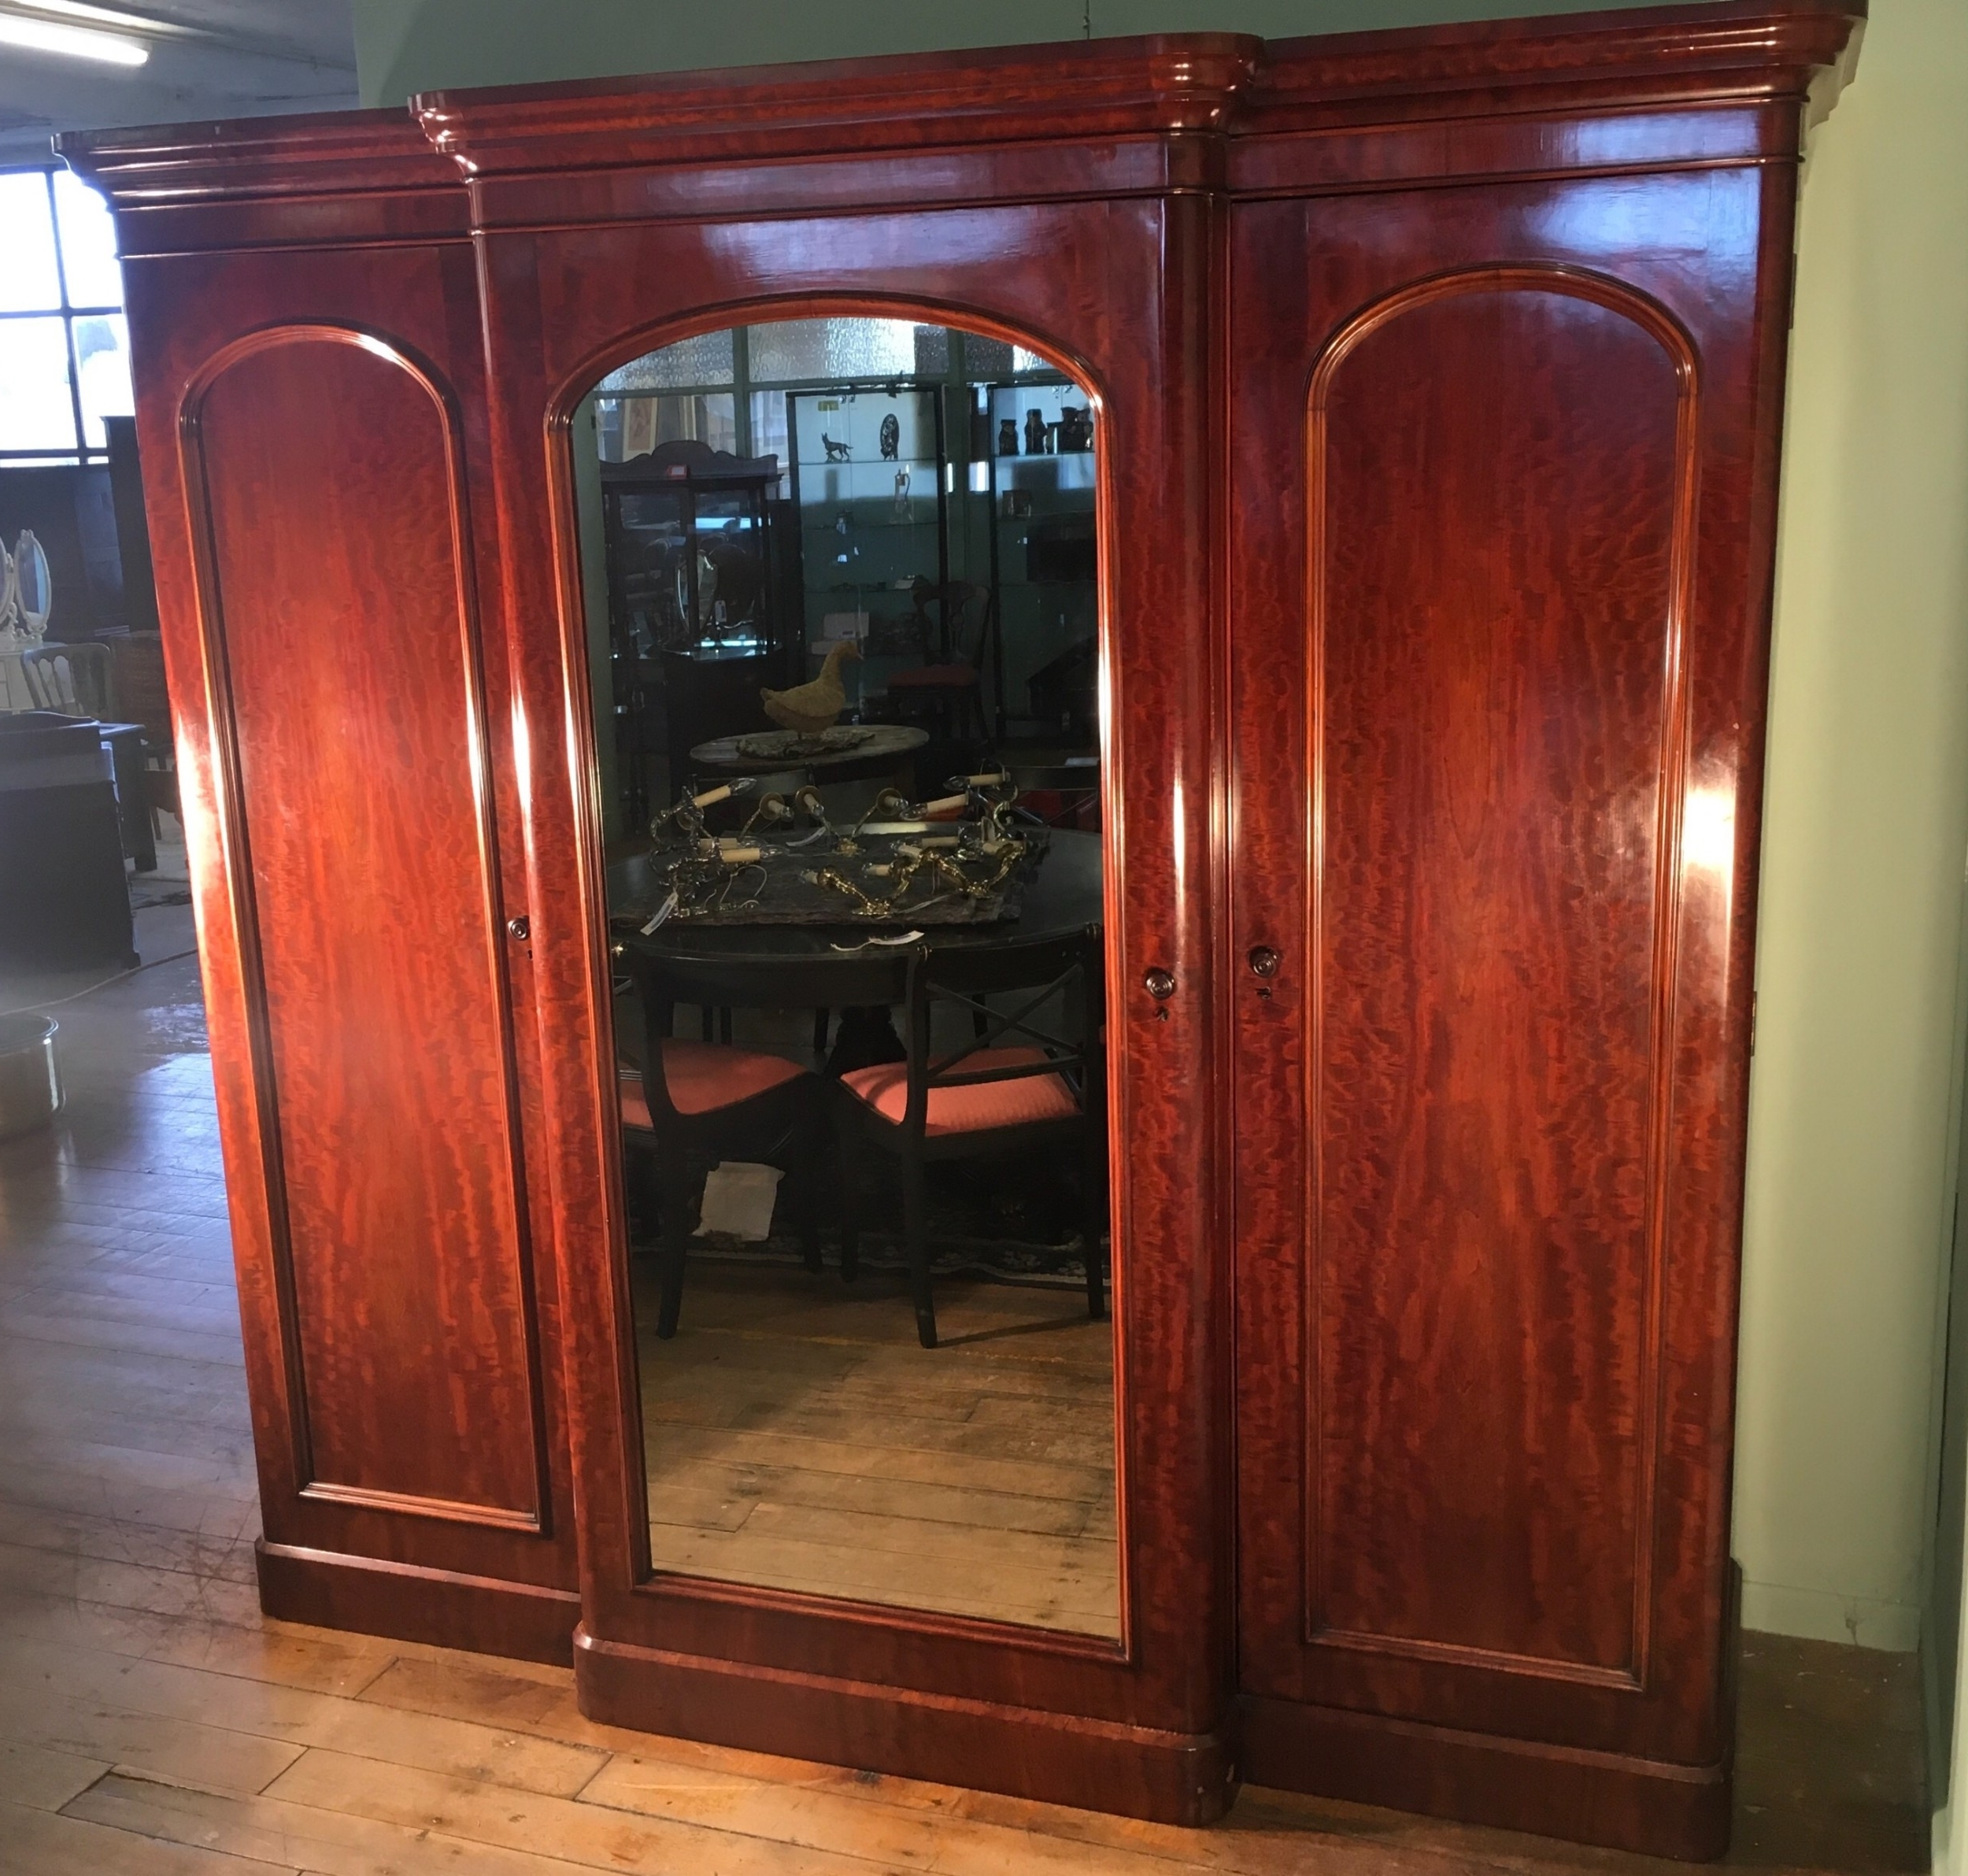 Breakfront Wardrobe In Most Current Victorian Mahogany Breakfront Wardrobe (View 7 of 15)